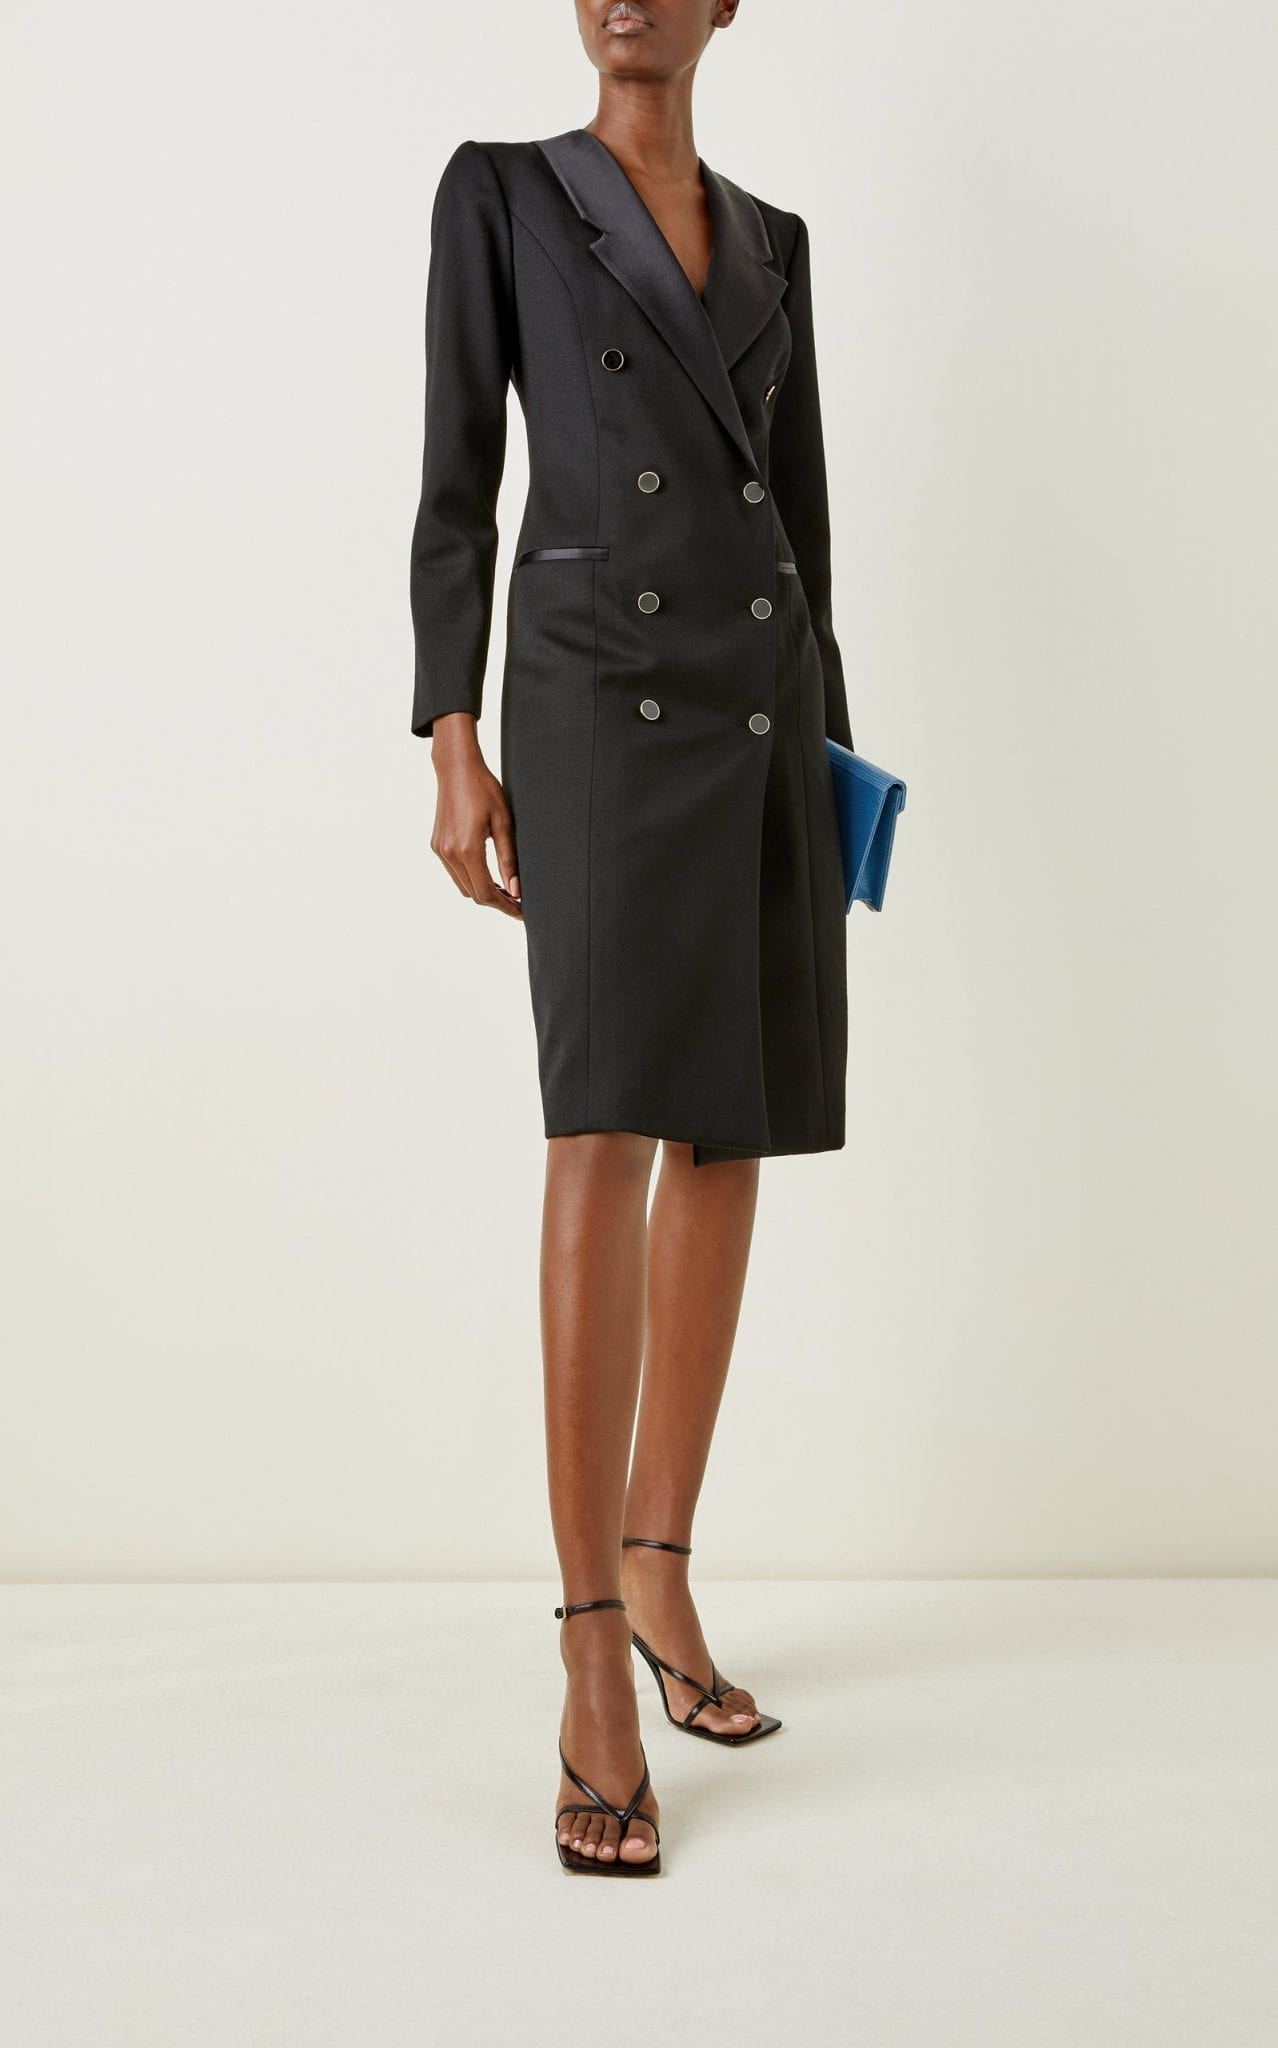 GIULIVA HERITAGE The Clotilde Satin-Trimmed Wool Double-Breasted Blazer Dress